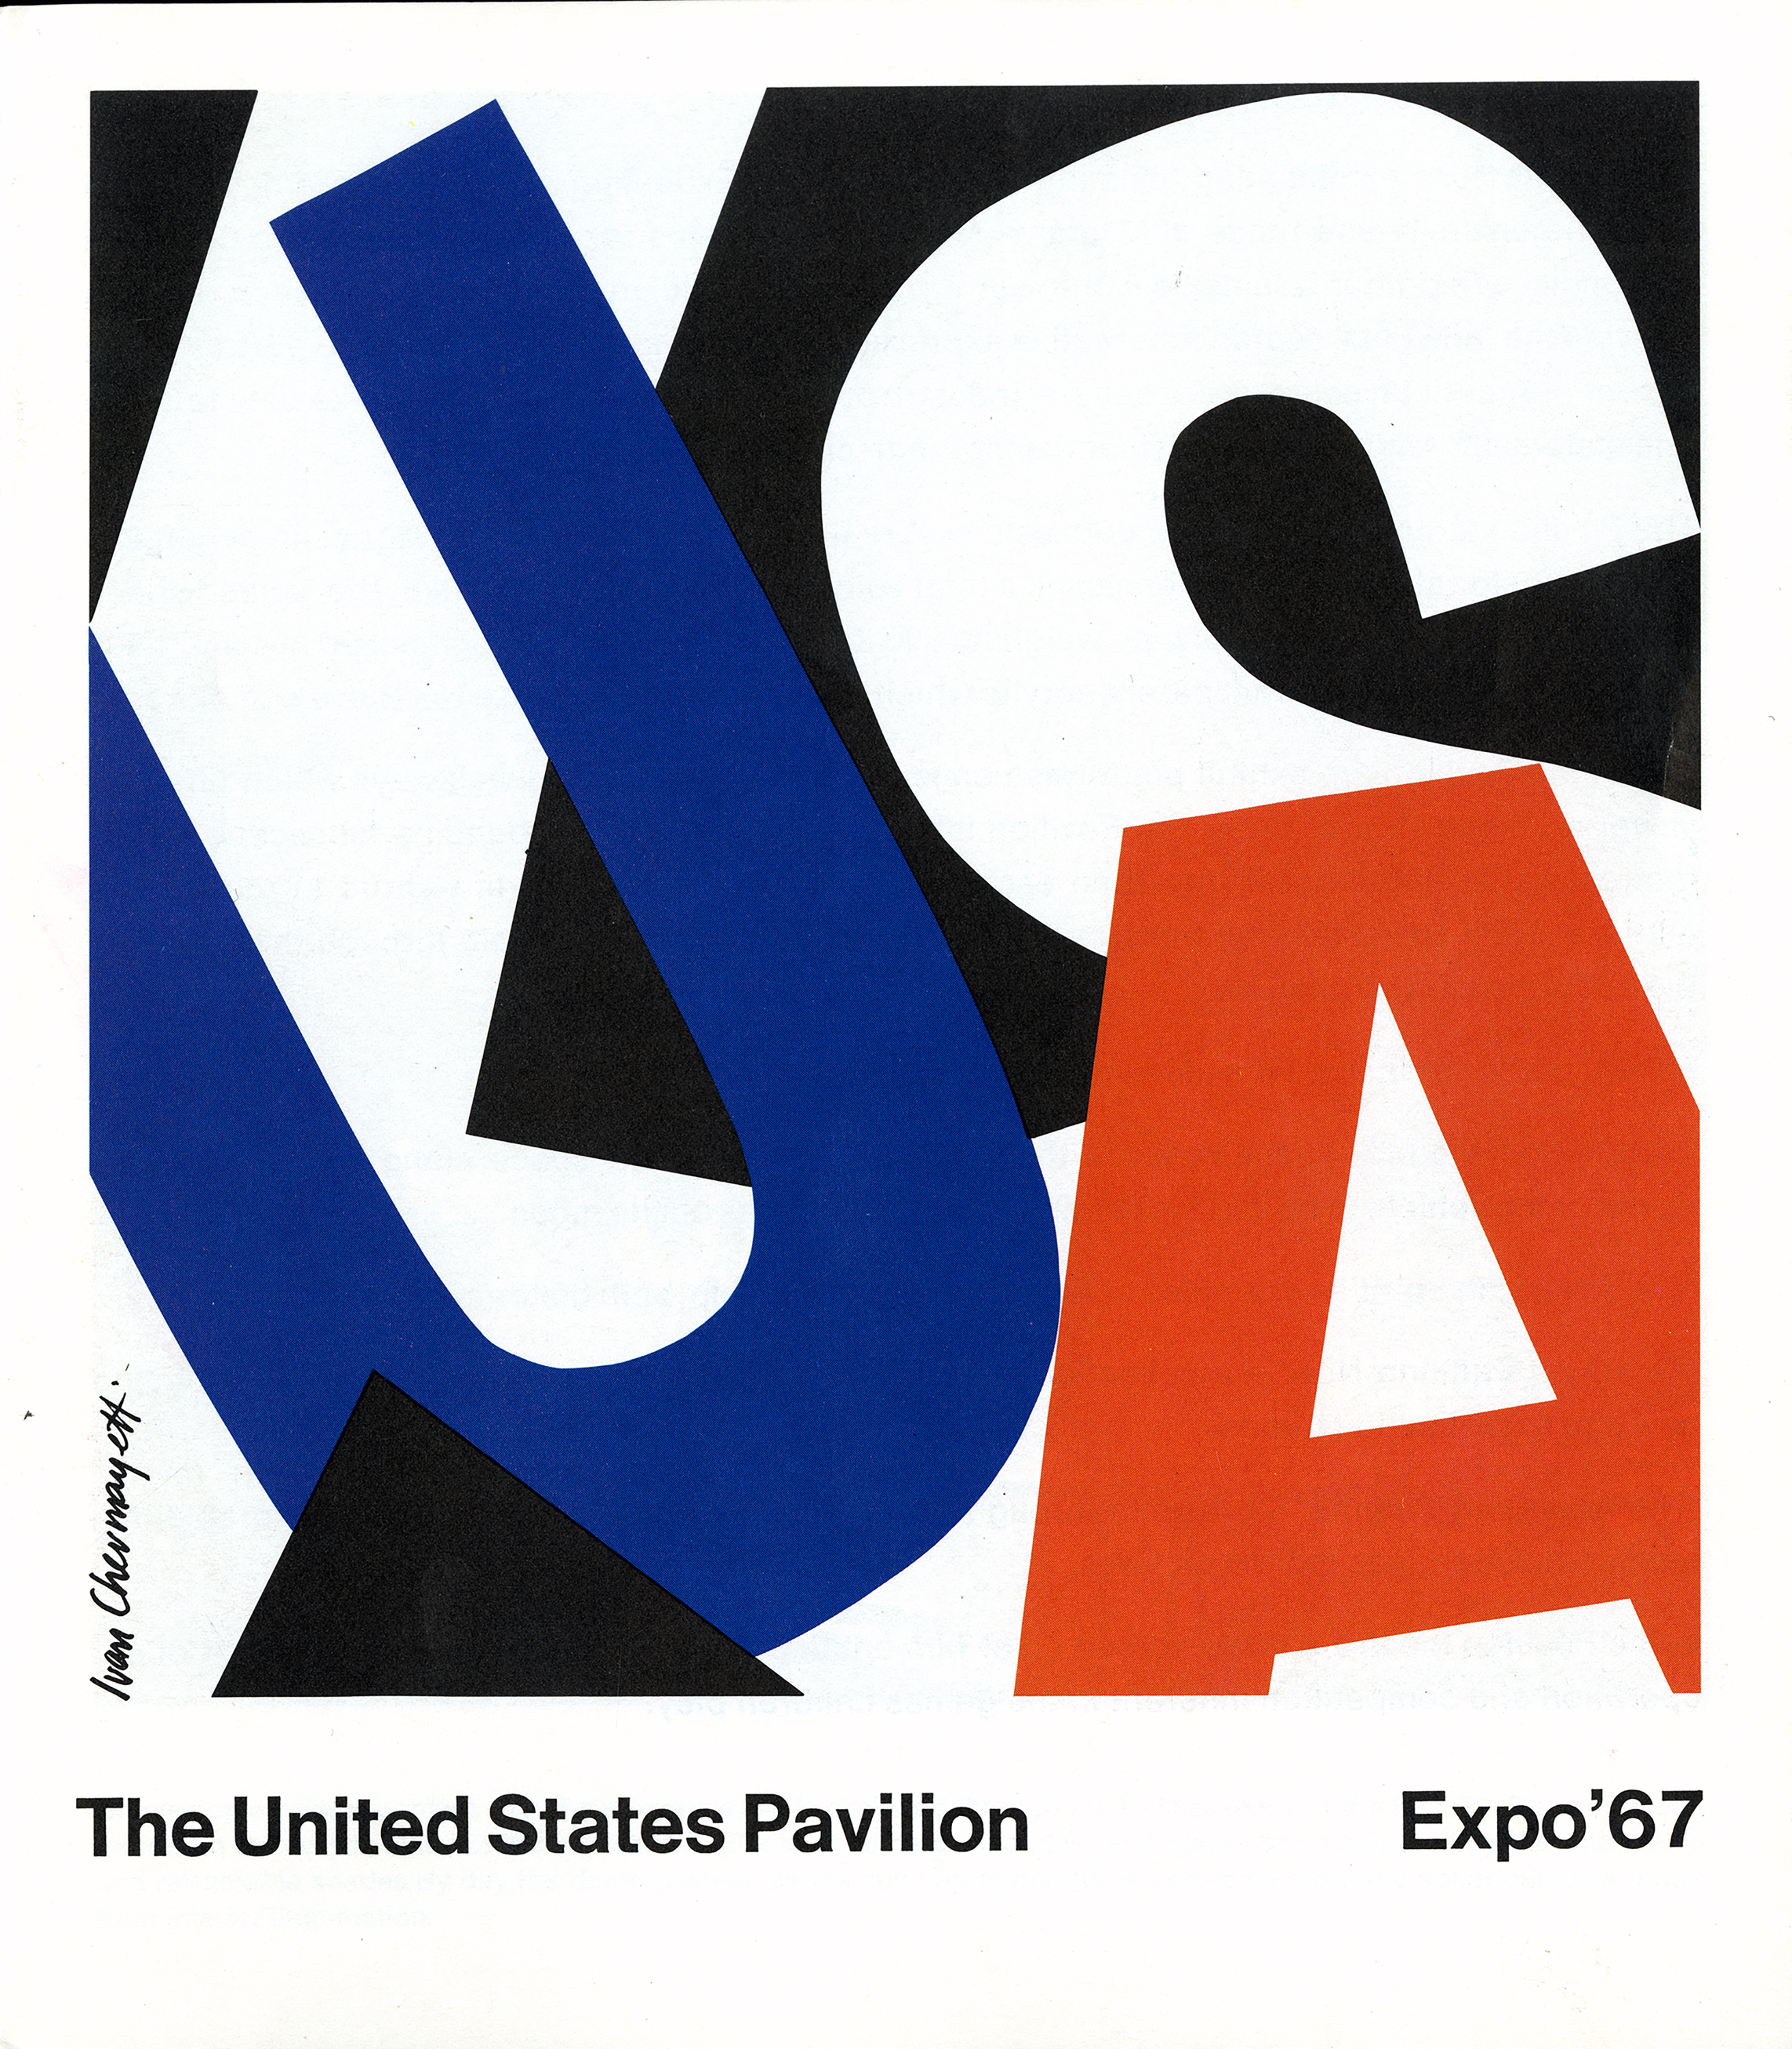 Graphic of the letters USA appearing large and jumbled, almost abstracted. Red, blue, black and white.